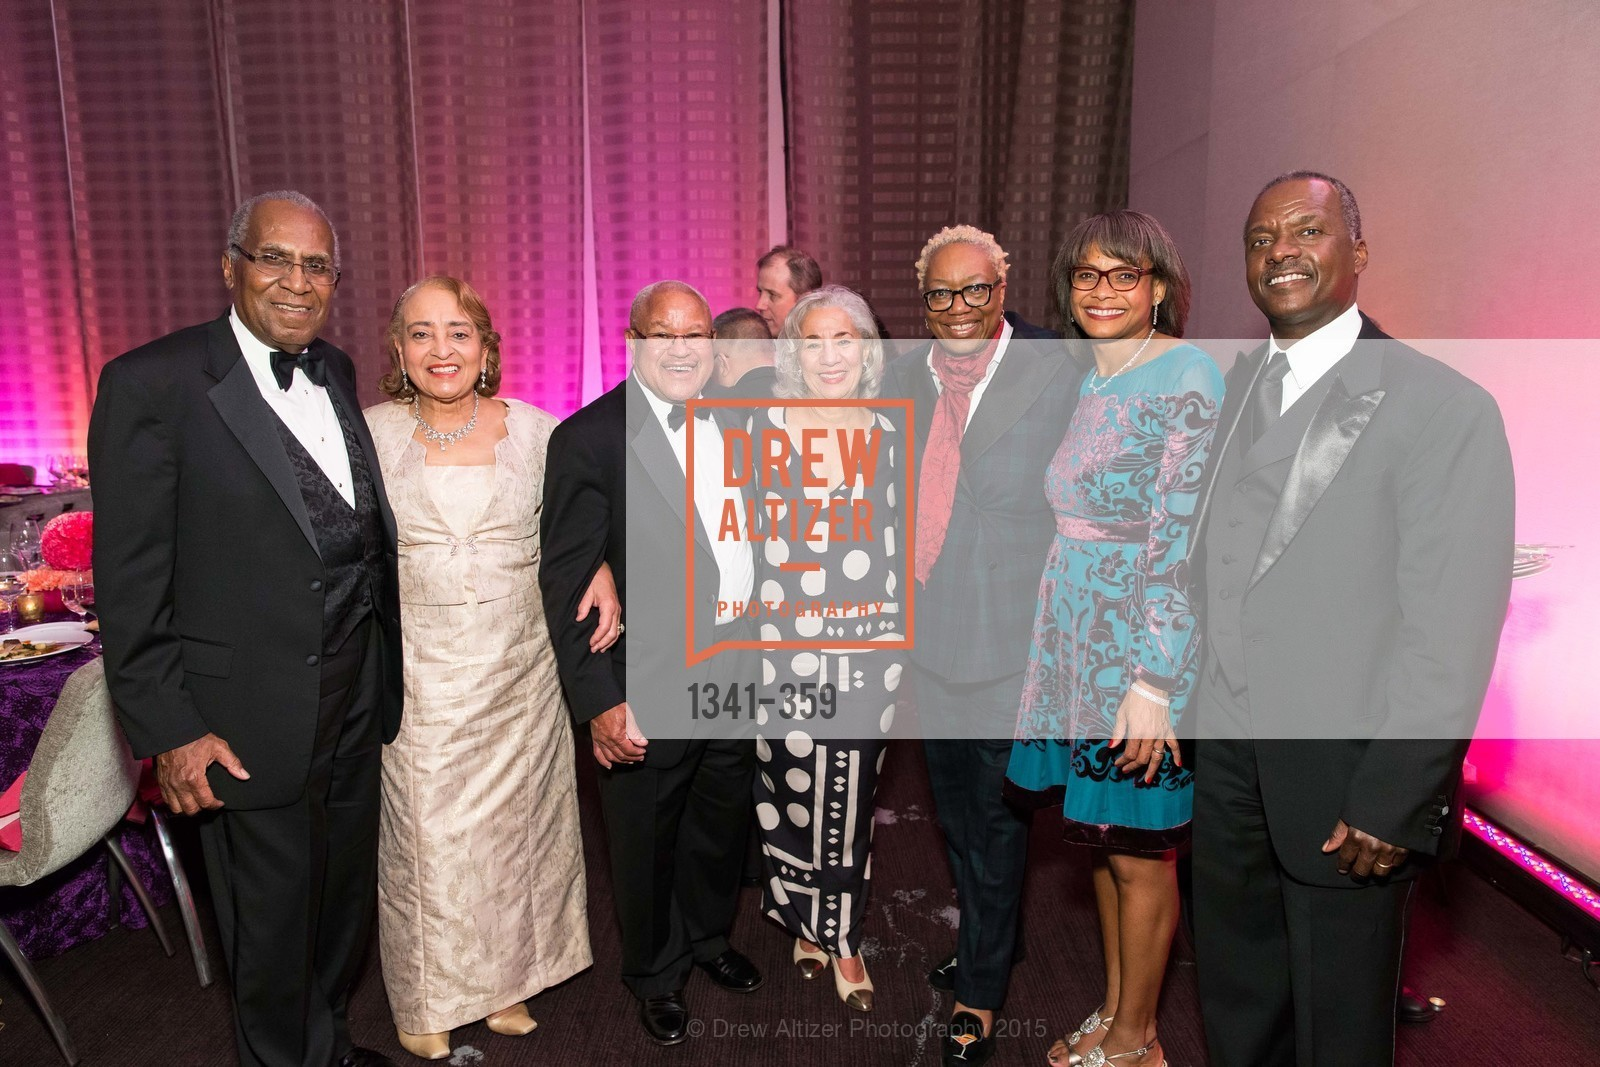 Lowell James Gibbs, Jewelle Taylor Gibbs, Harry Bremond, Peggy Woodford Forbes, Linda Harrison, Karen Jenkins Johnson, Kevin Johnson, 2015 MoAD Gala: Finding the I in Diaspora, MoAD Museum & The St. Regis, October 10th, 2015,Drew Altizer, Drew Altizer Photography, full-service agency, private events, San Francisco photographer, photographer california